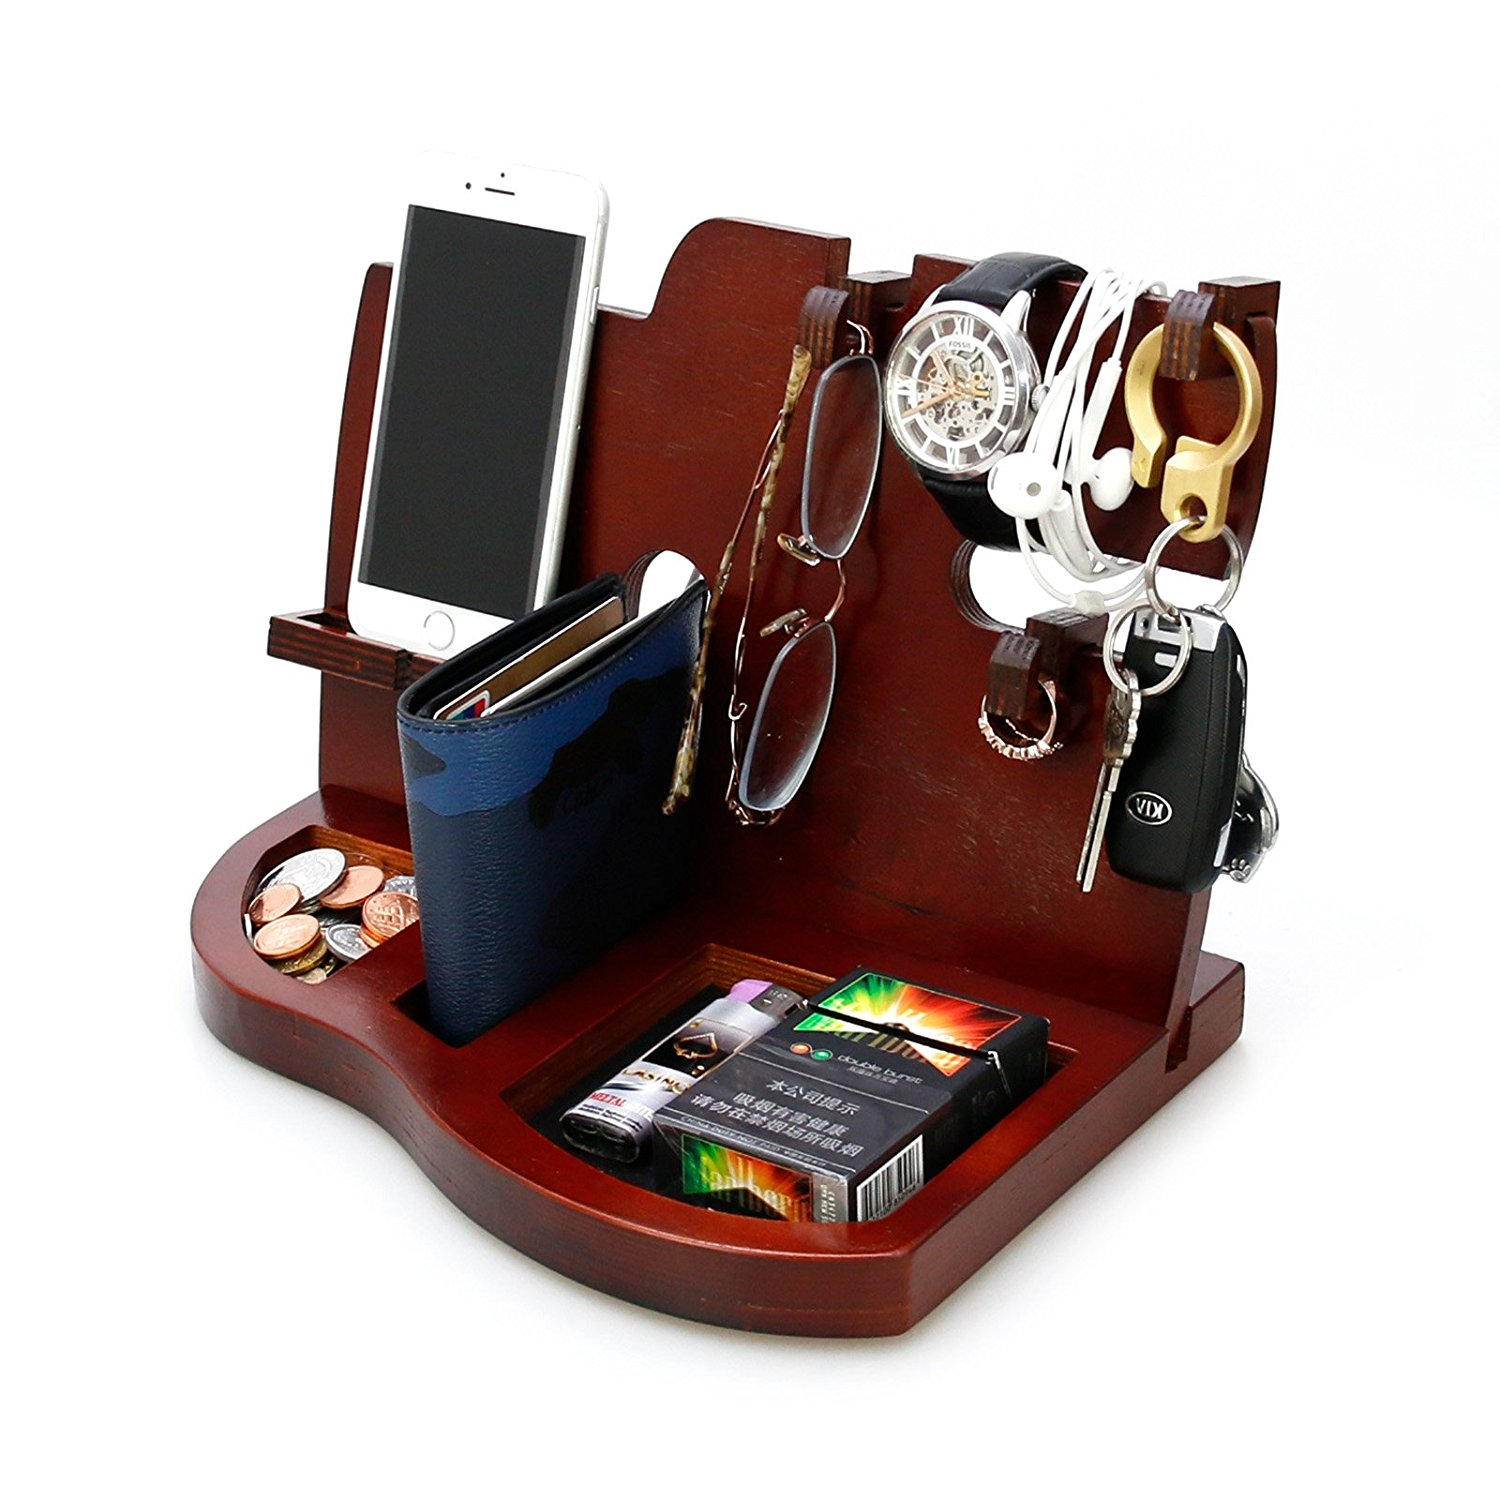 Buy Red Wooden Phone Docking Station With Key Holder Wallet